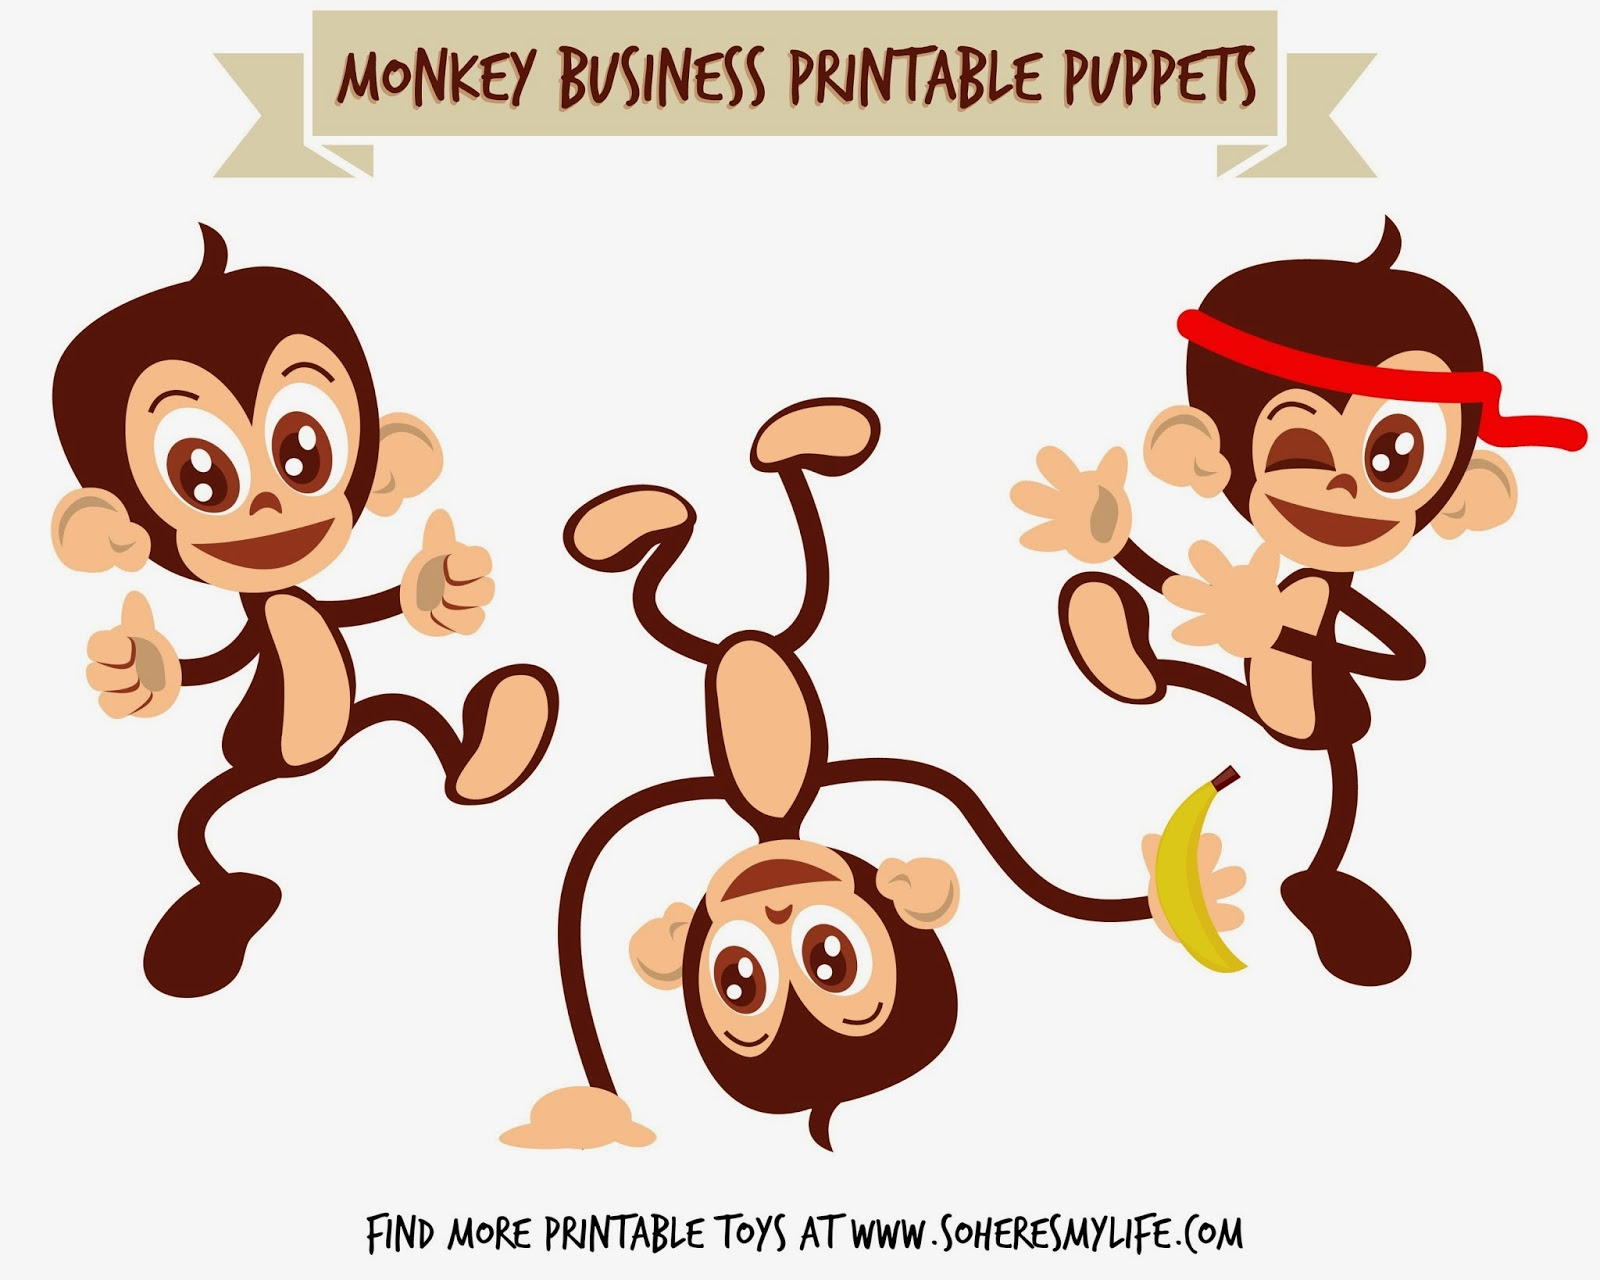 Free Monkey Printable Puppets from SoHeresMyLife.com - click through and get them